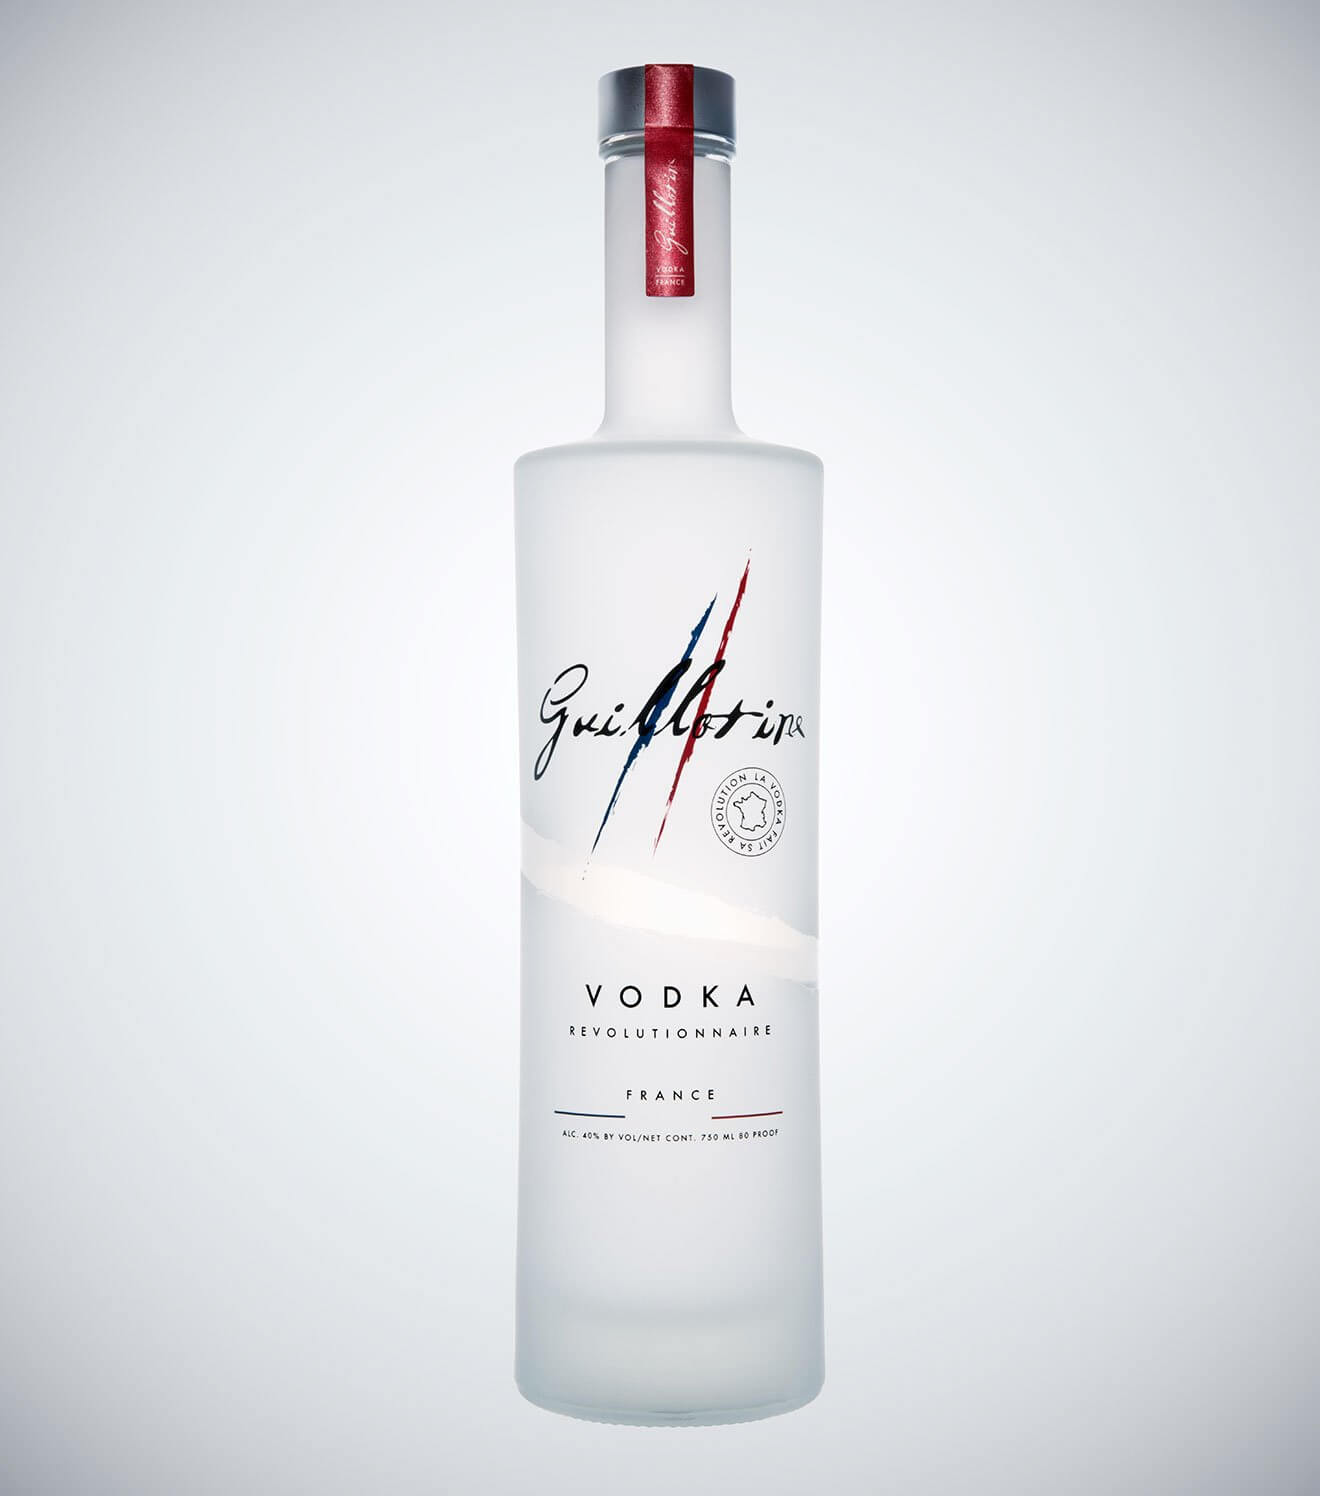 Guillotine Vodka, bottle on light gradient